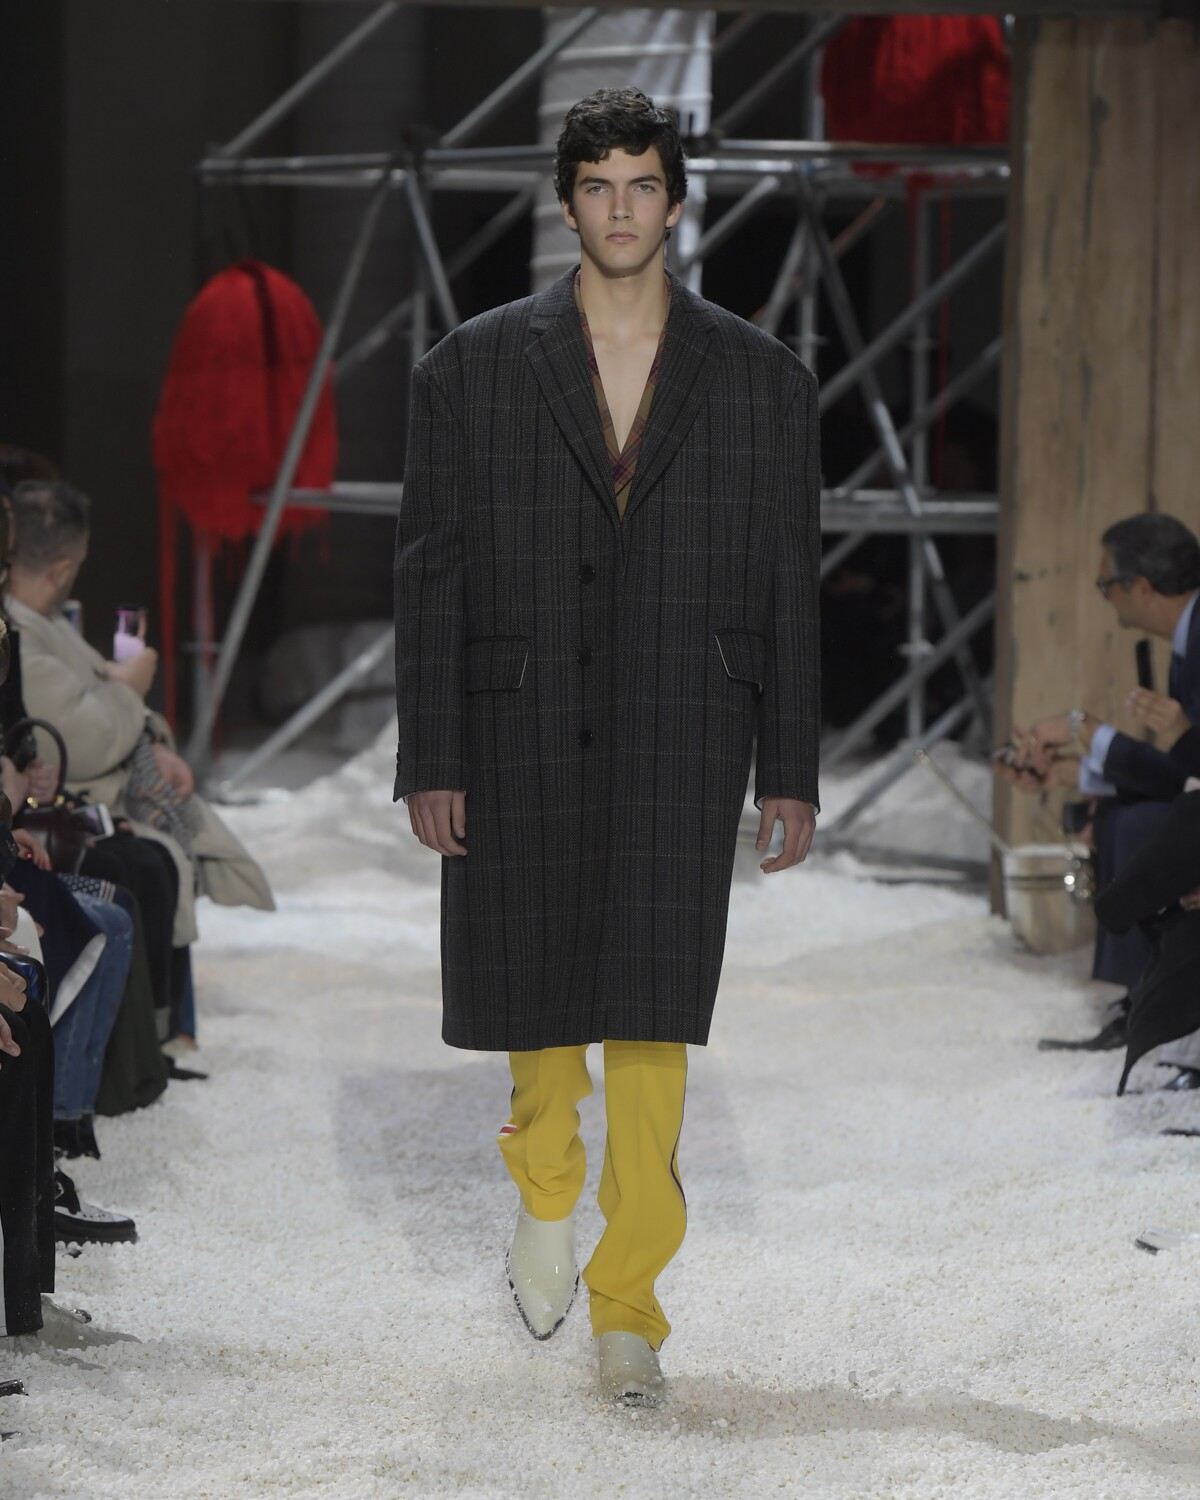 Man FW 2018-19 Fashion Show Calvin Klein 205W39NYC